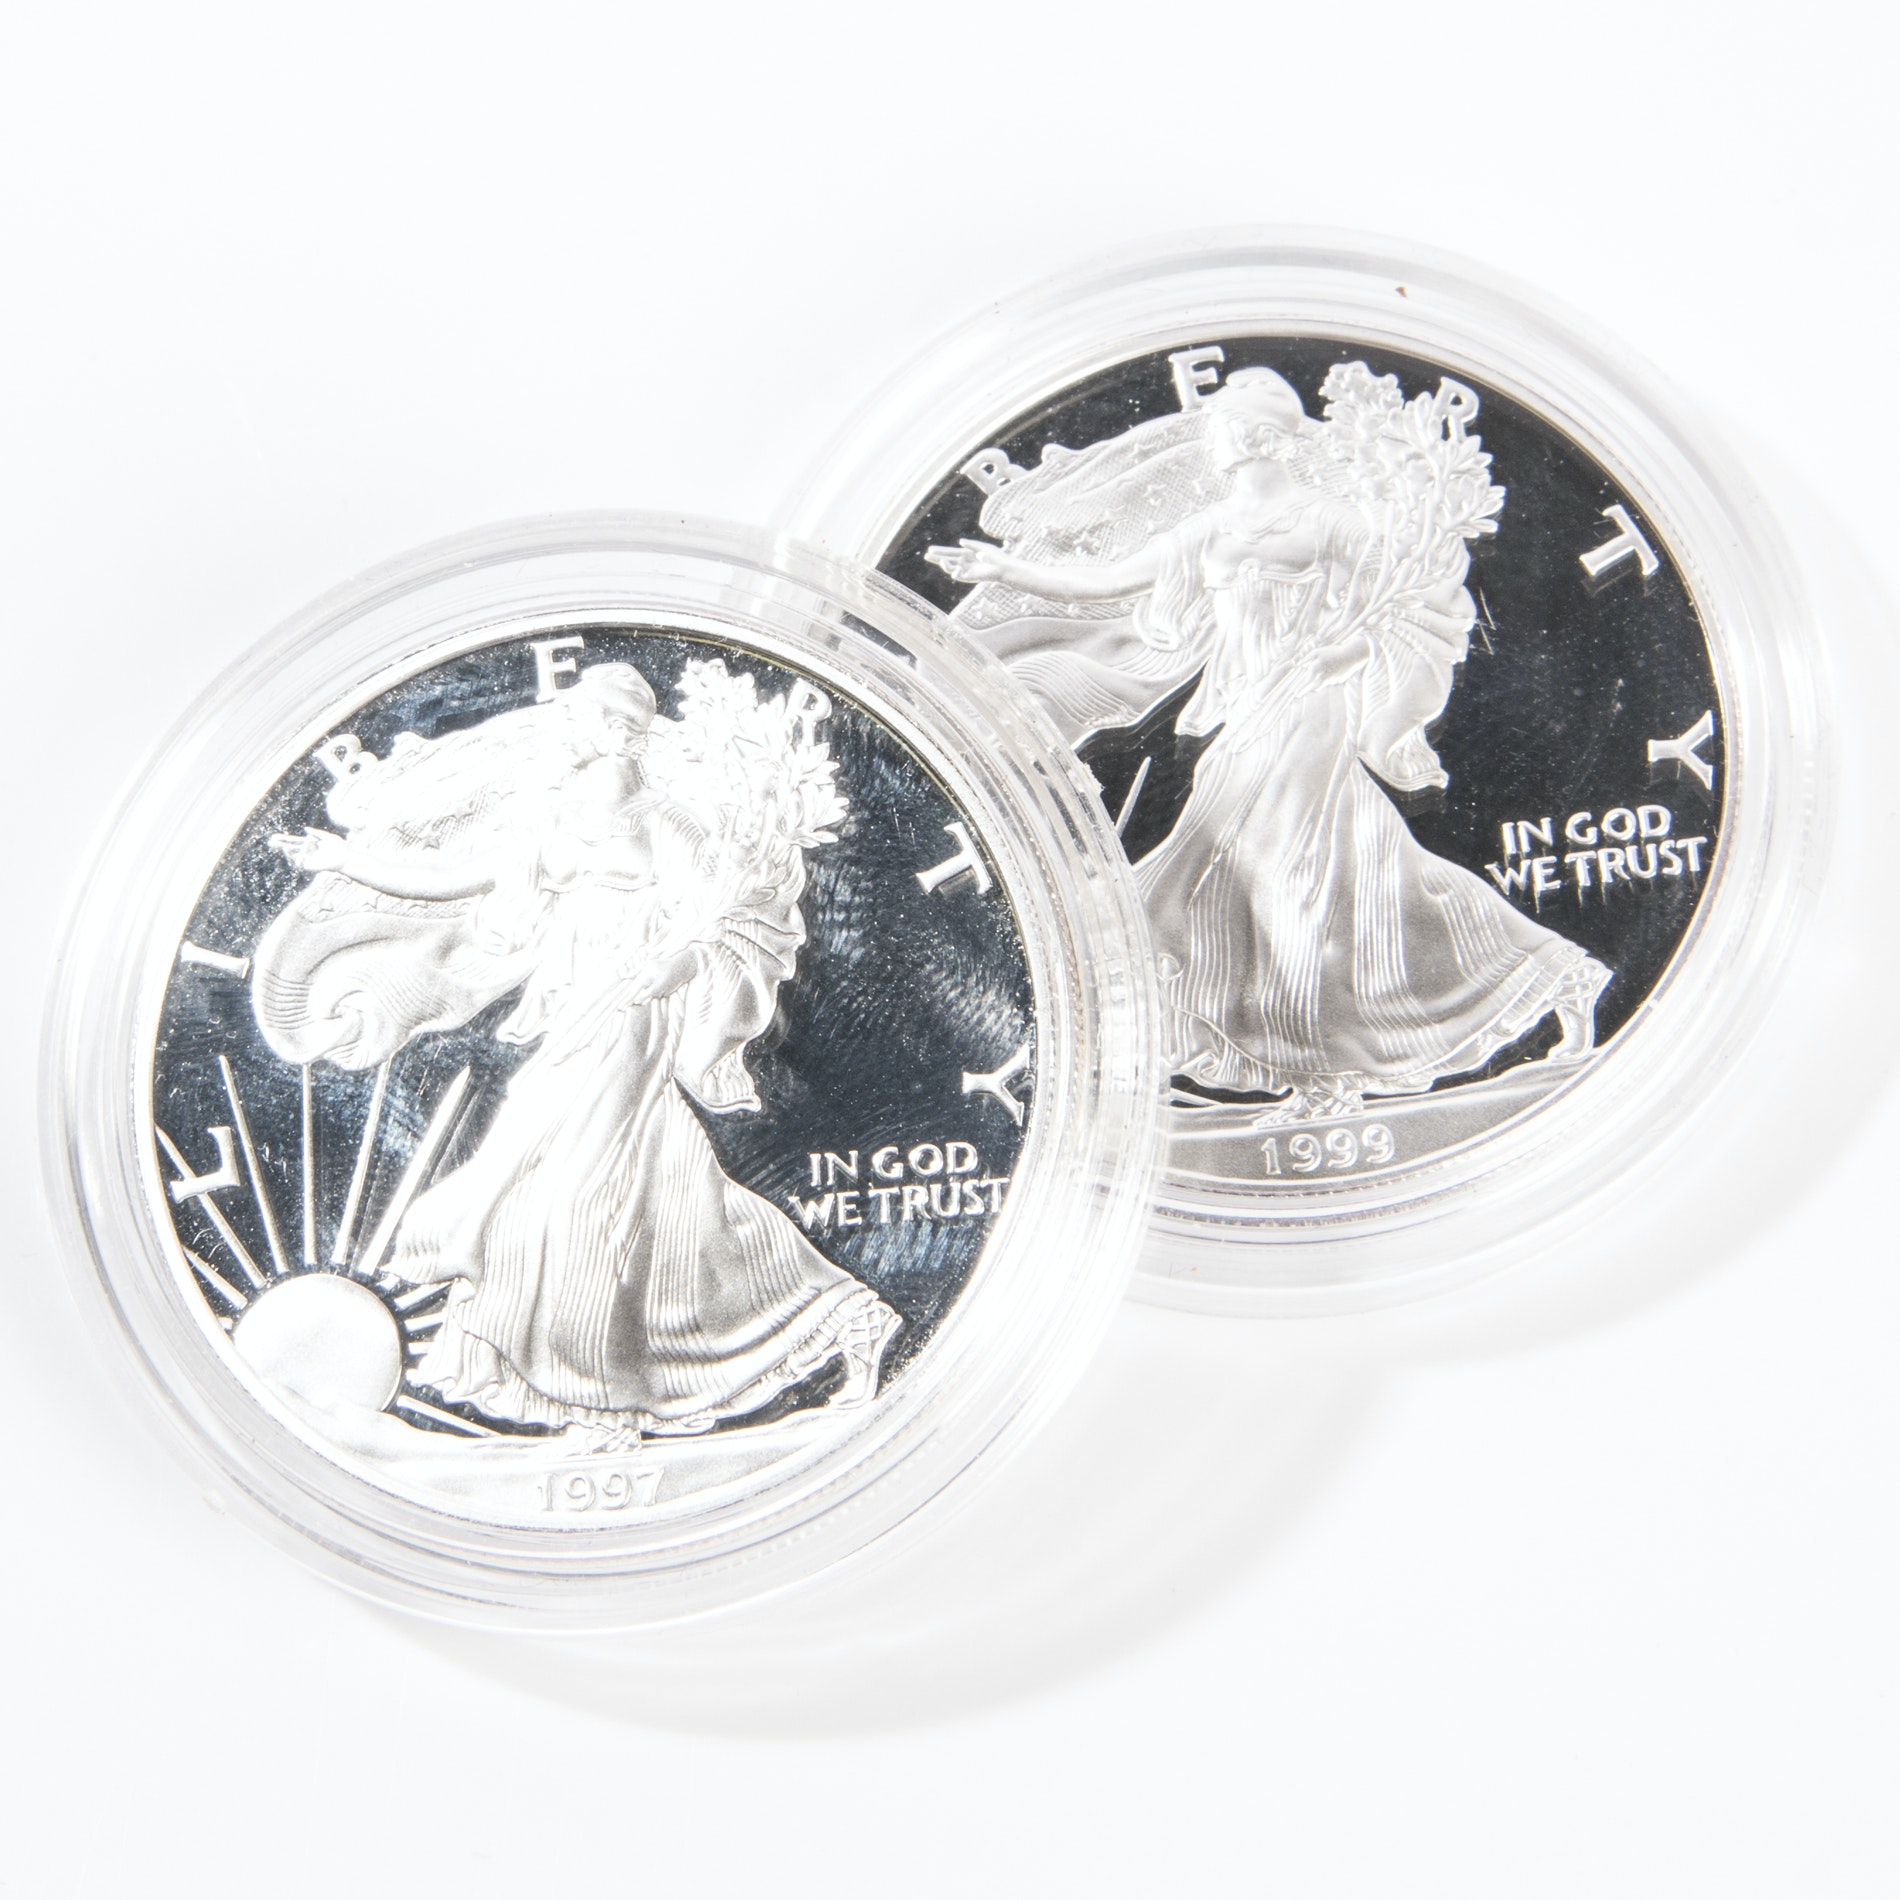 1997 and 1999 United States Silver Eagle Dollars